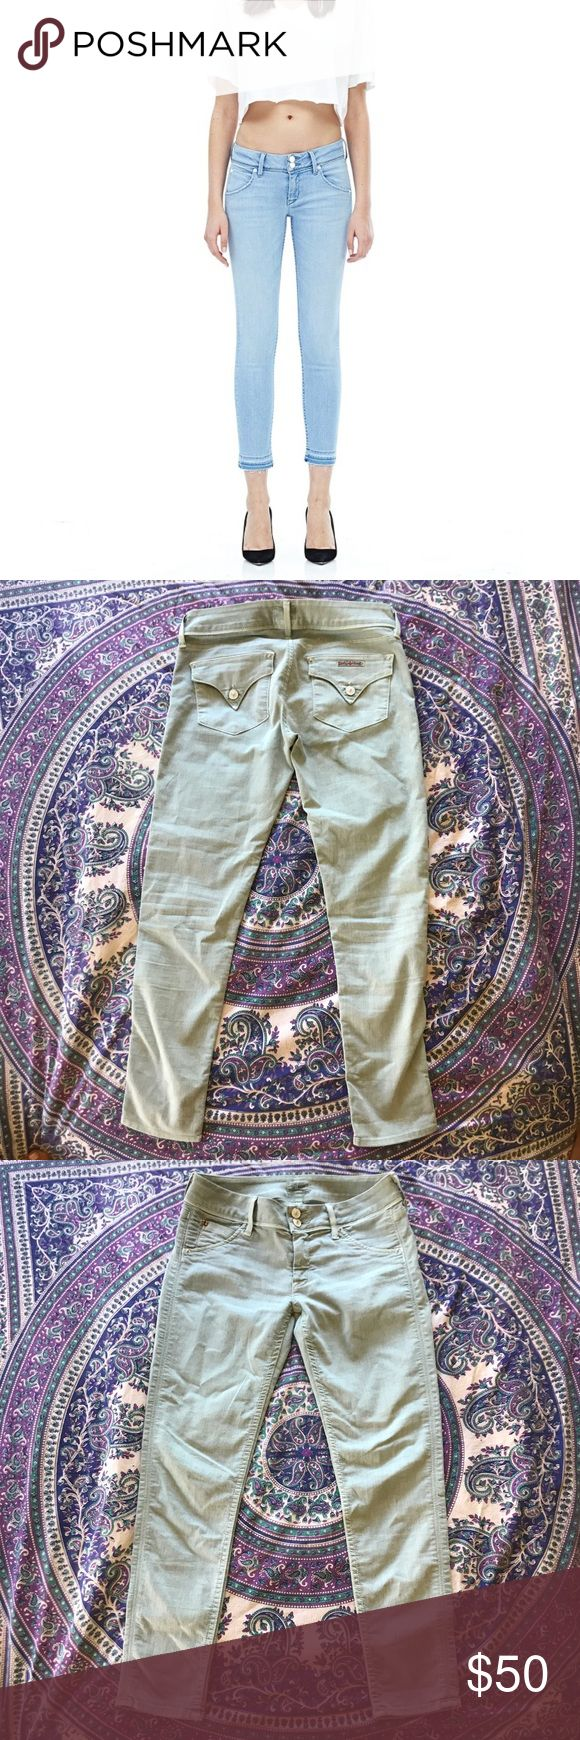 """Hudson Jeans - Collin Skinny Ankle Crop - 27 Gently worn with no signs of wear. Pictured is a different color way they have online now. This is a beautiful soft mint color jean. 26"""" inseam. Fits like 26/27 because of the stretch. Hudson Jeans Jeans Ankle & Cropped"""